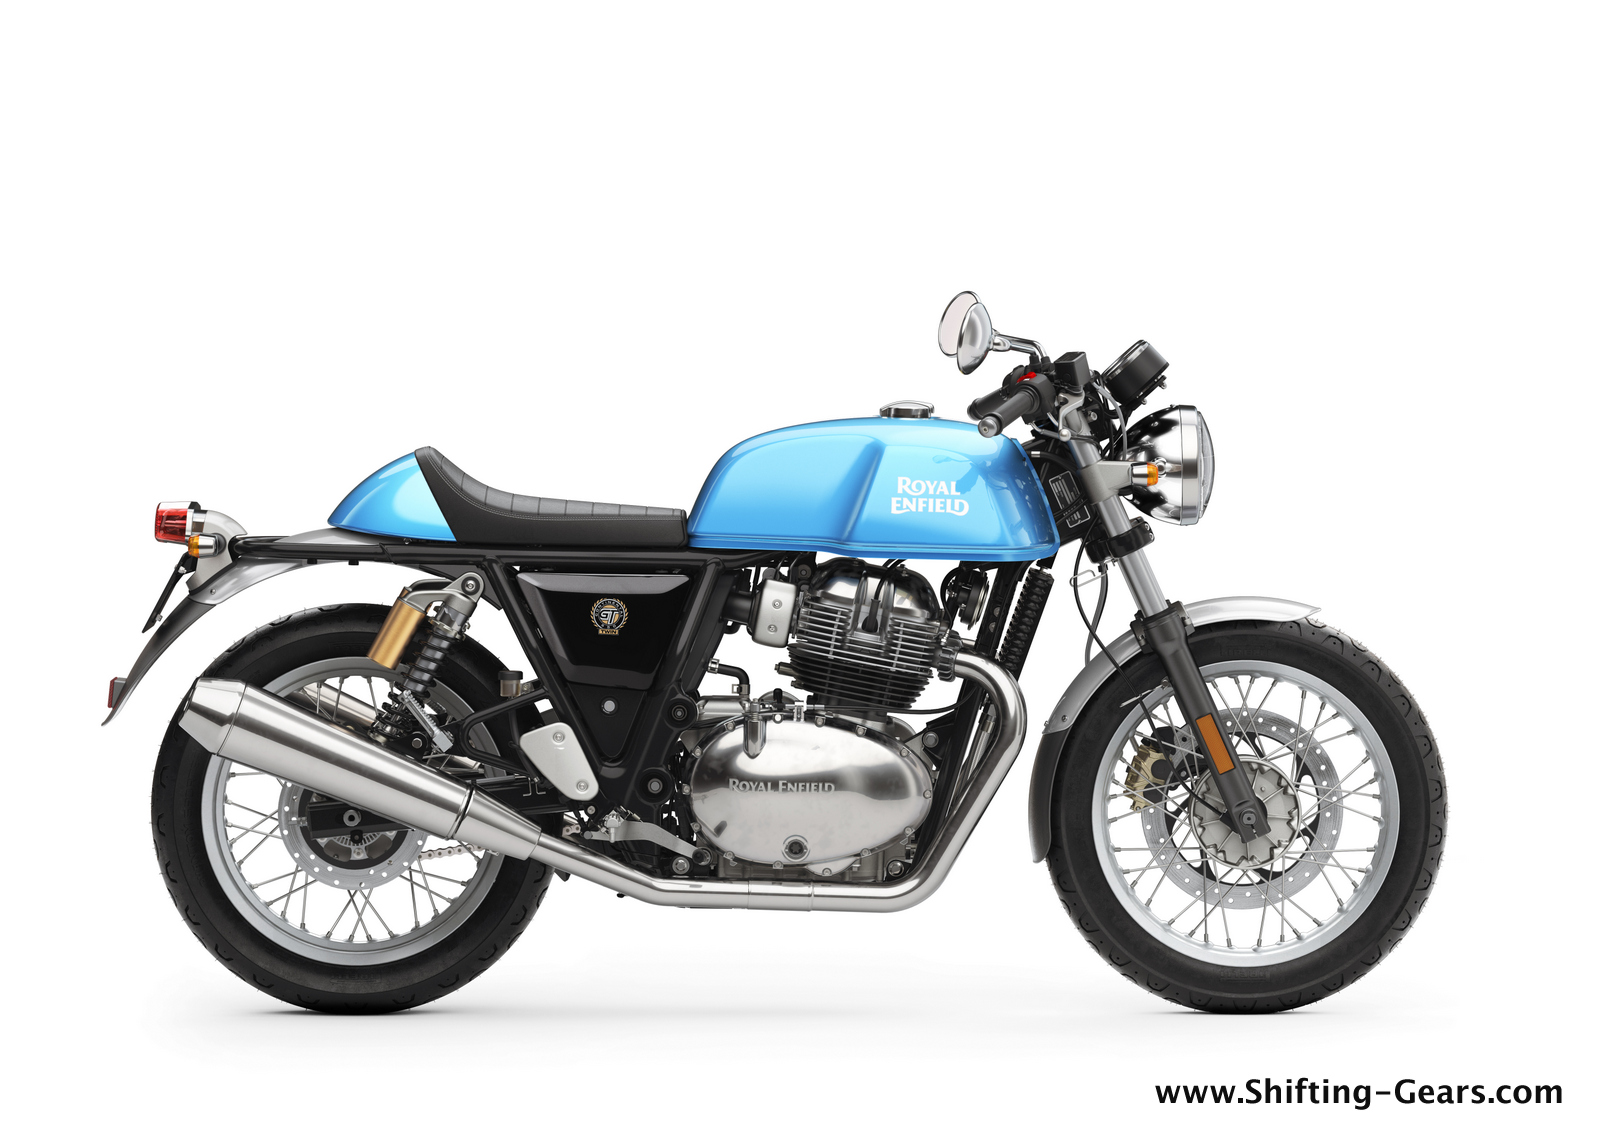 royal enfield interceptor 650 continental gt 650 photo gallery shifting gears. Black Bedroom Furniture Sets. Home Design Ideas